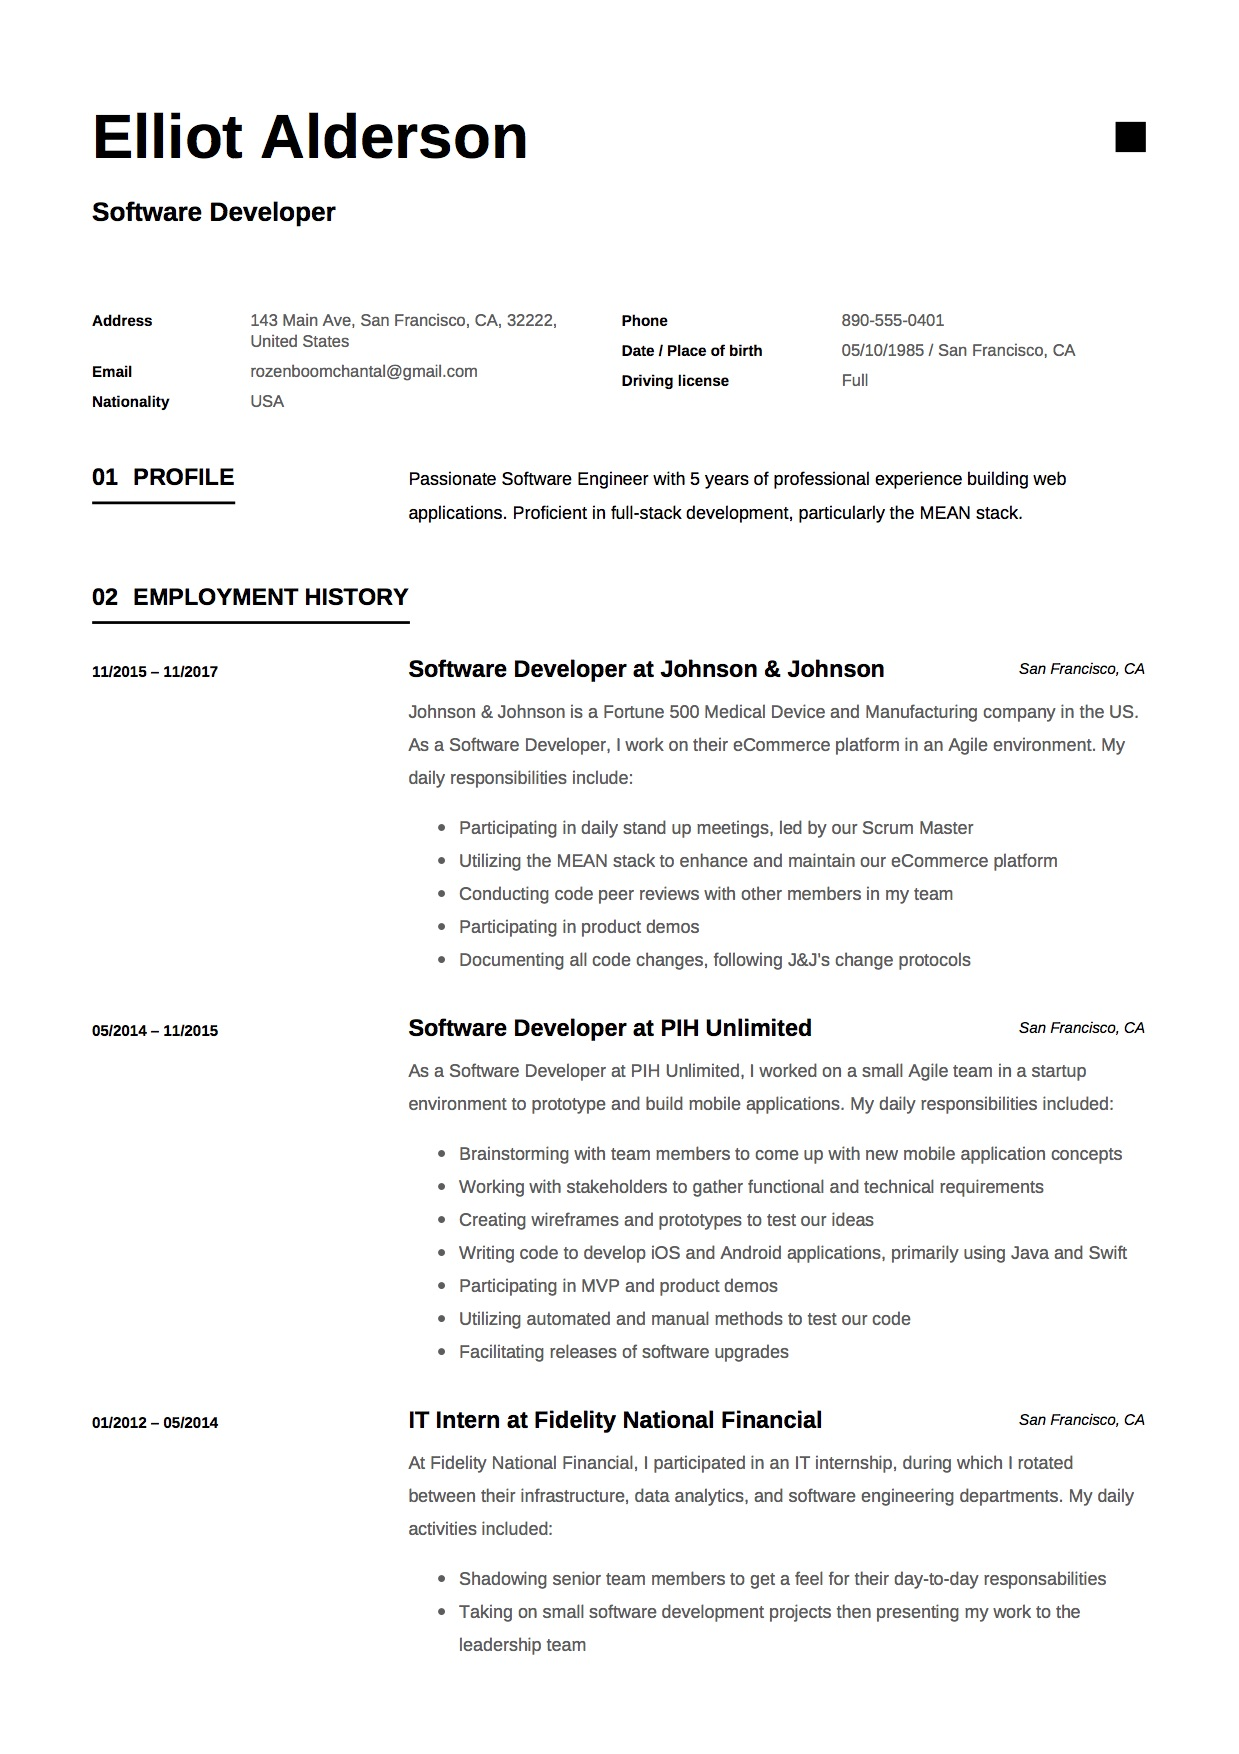 12 software developer resume samples 2018